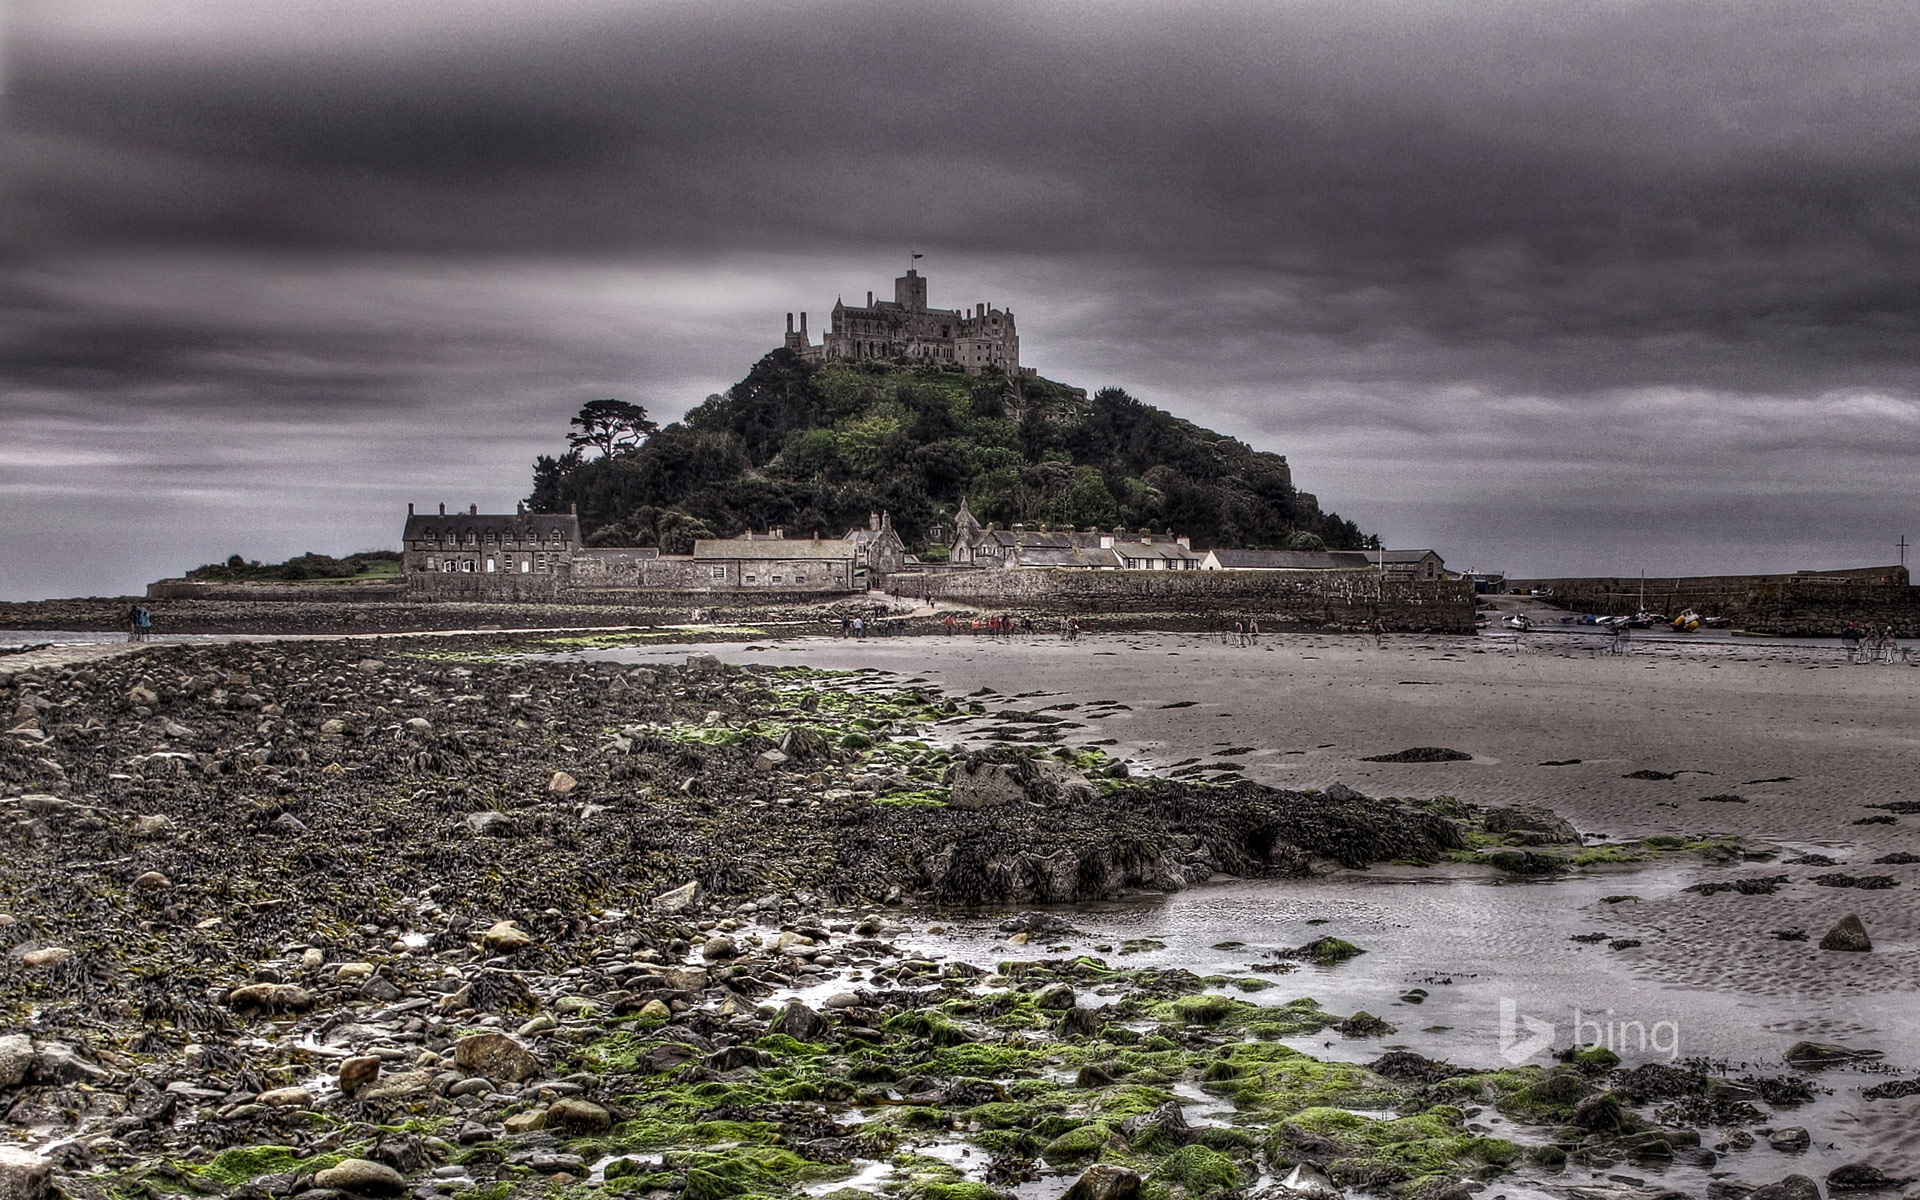 St Michael's Mount, off the coast of Marazion, Cornwall, England